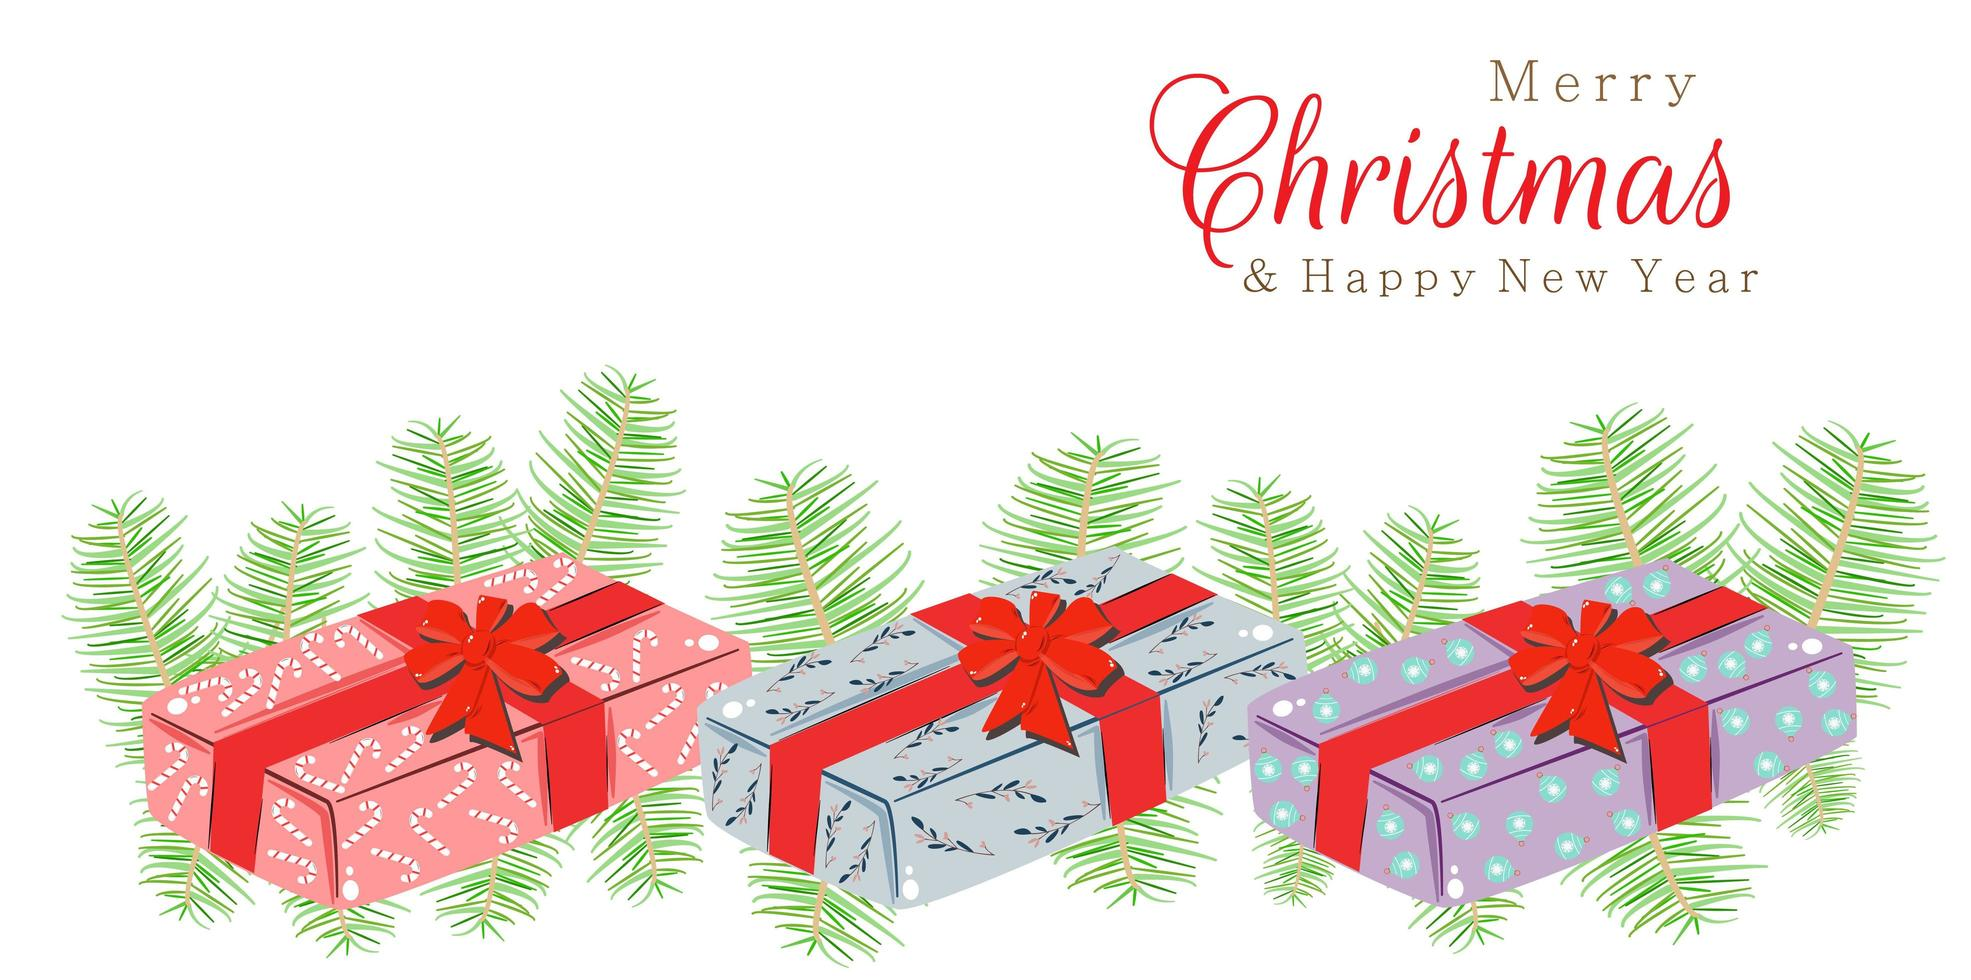 Merry Christmas 2021 Clipart Merry Christmas New Year 2021 Design With Gifts 1505734 Vector Art At Vecteezy